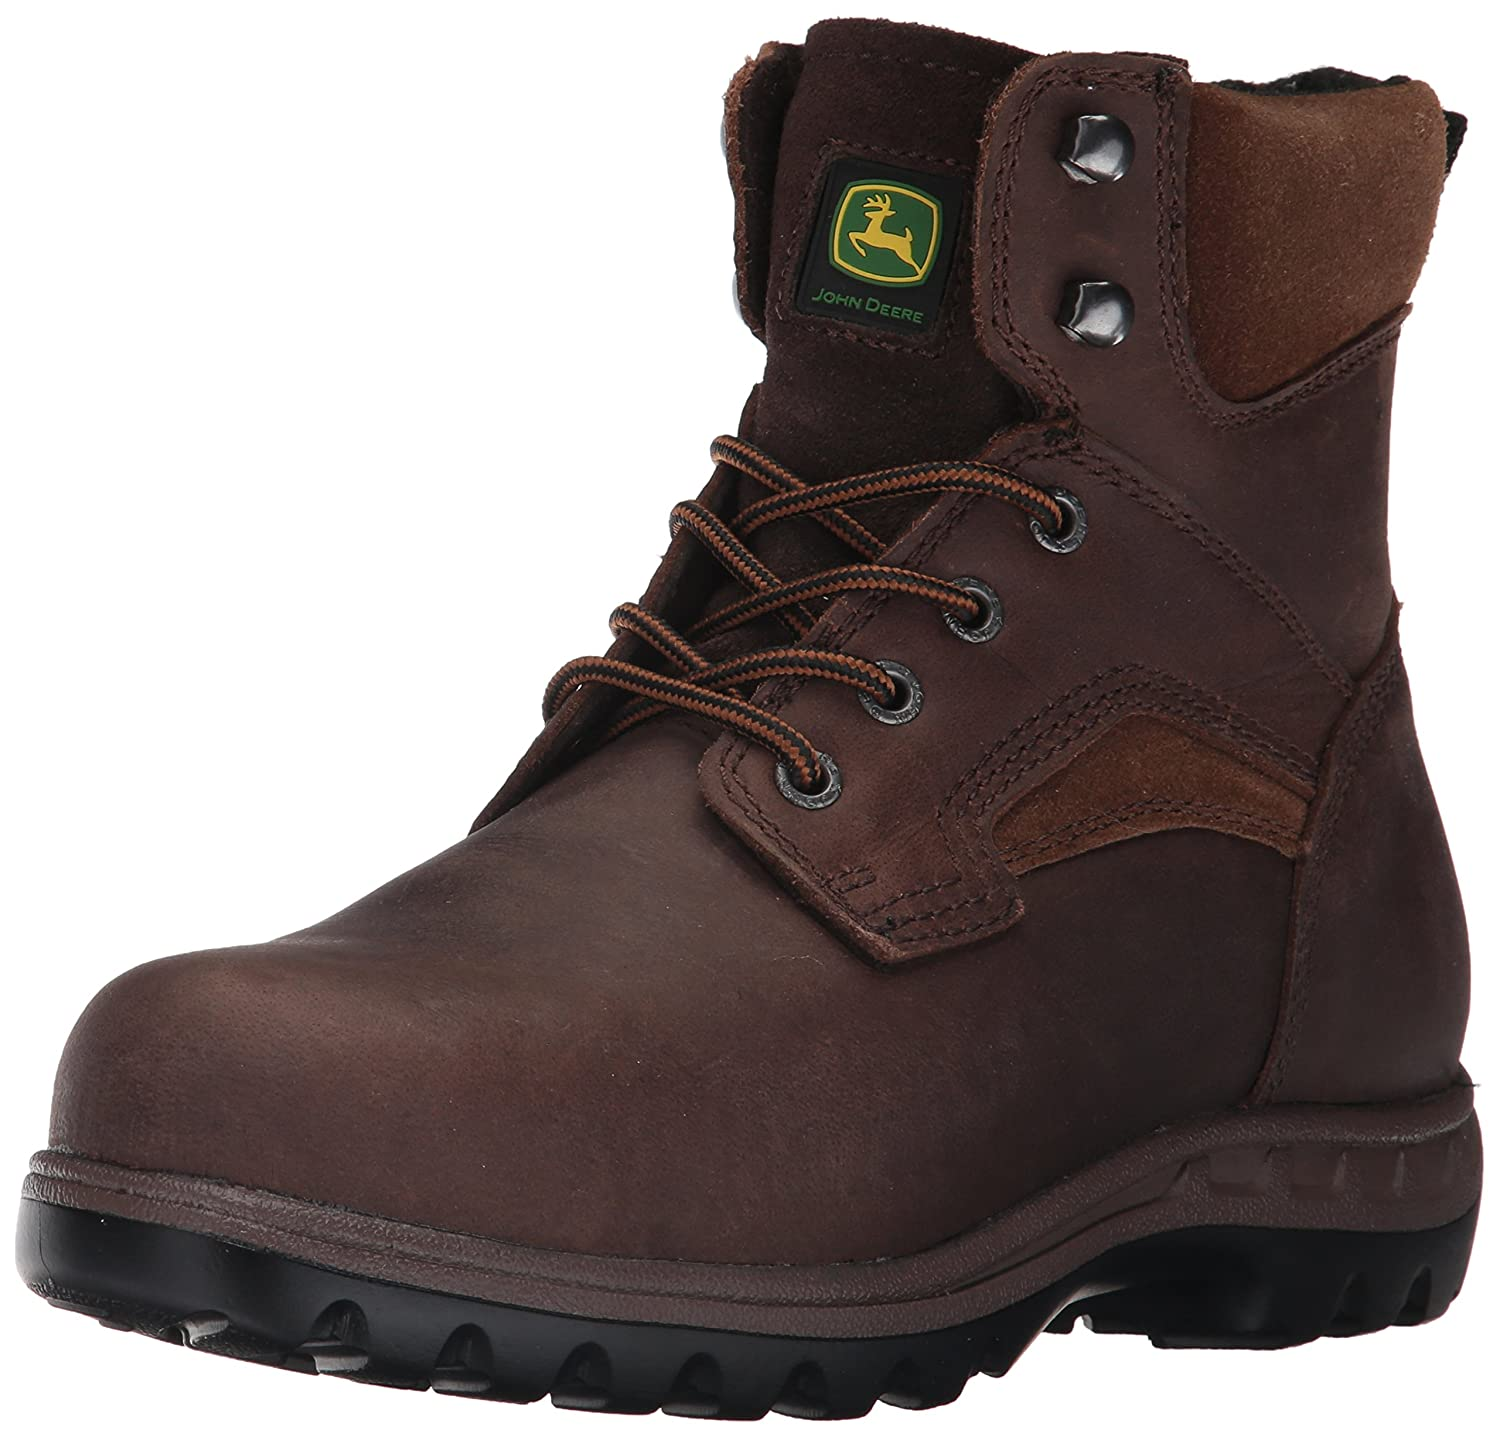 John John John Deere Women's JD3694 Ankle Boot B0711MFTZC 10 W US|Brown 747567